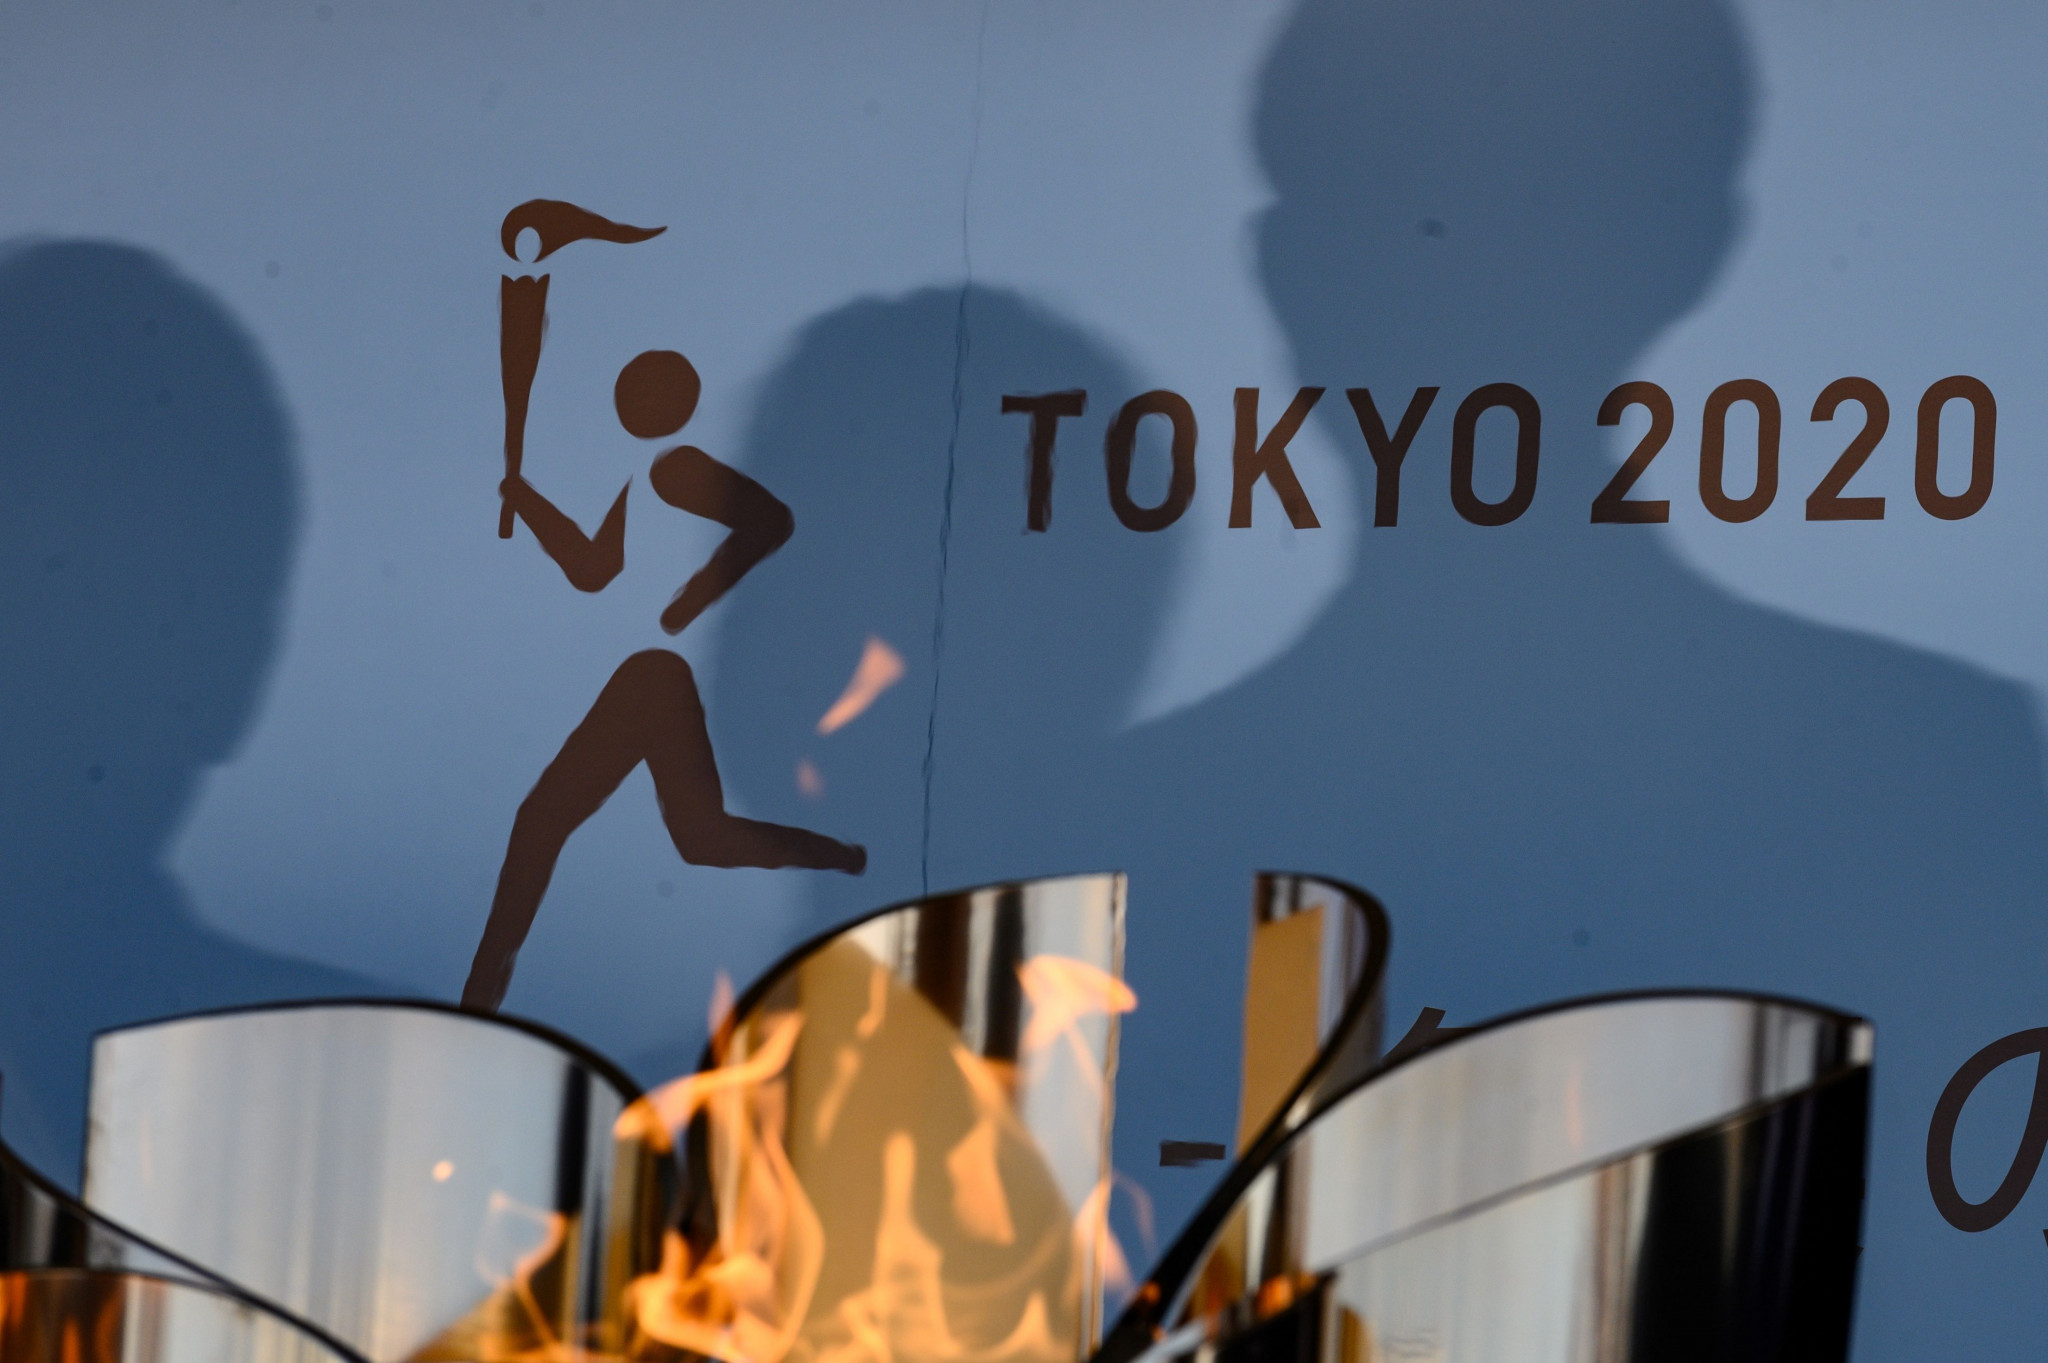 Shimane Governor threatens to cancel Tokyo 2020 Torch Relay visit over COVID-19 cases